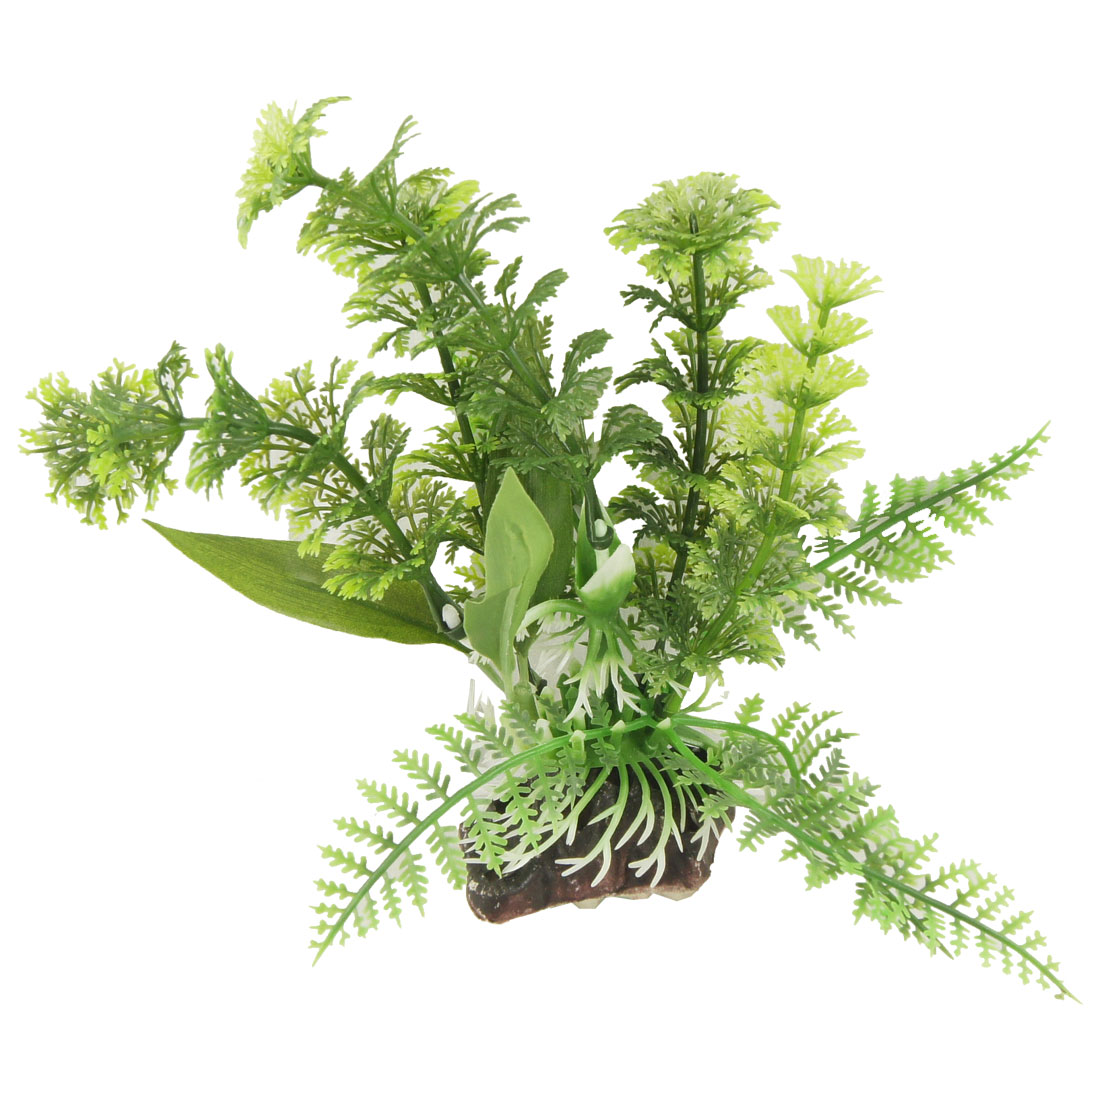 Plastic Snowflake Leaves Ceramic Base Aquarium Plant Ornament Green